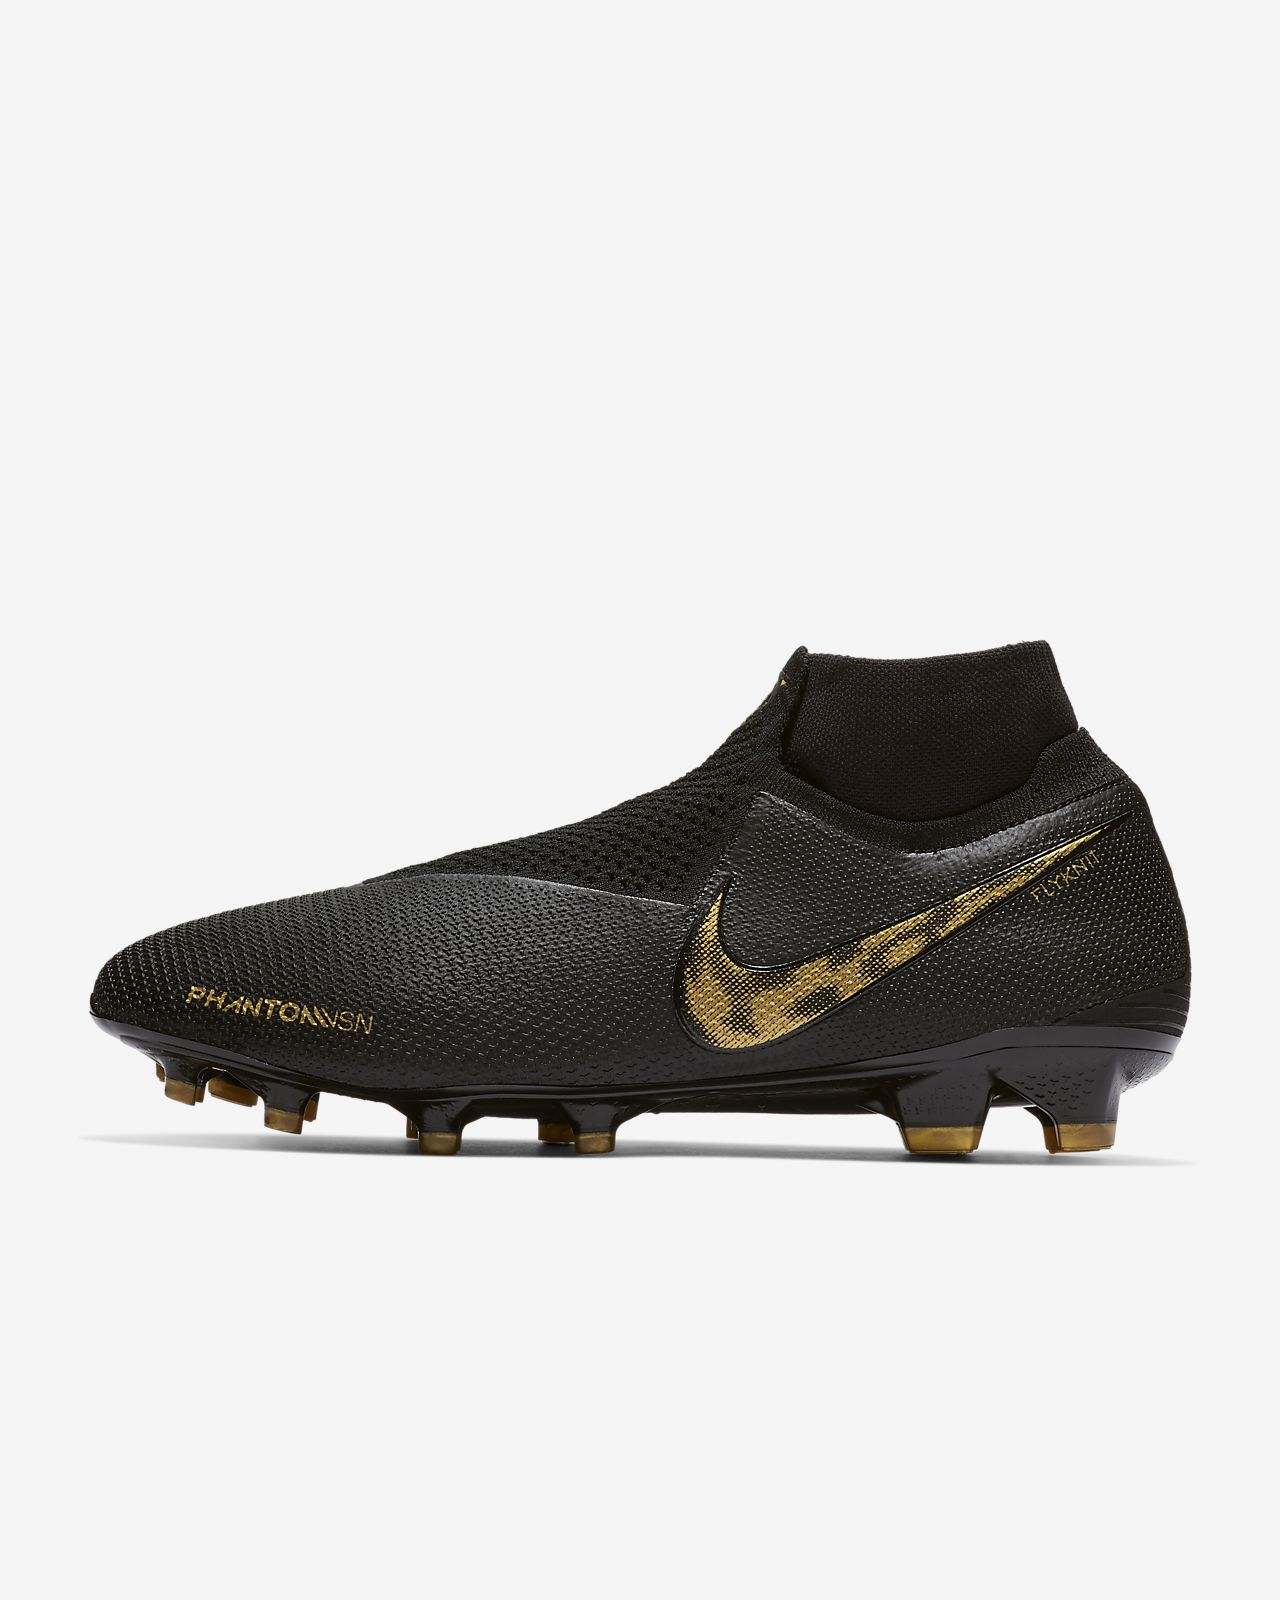 3bd2c0f6f98ff Nike Phantom Vision Elite Dynamic Fit FG Firm-Ground Soccer Cleat ...